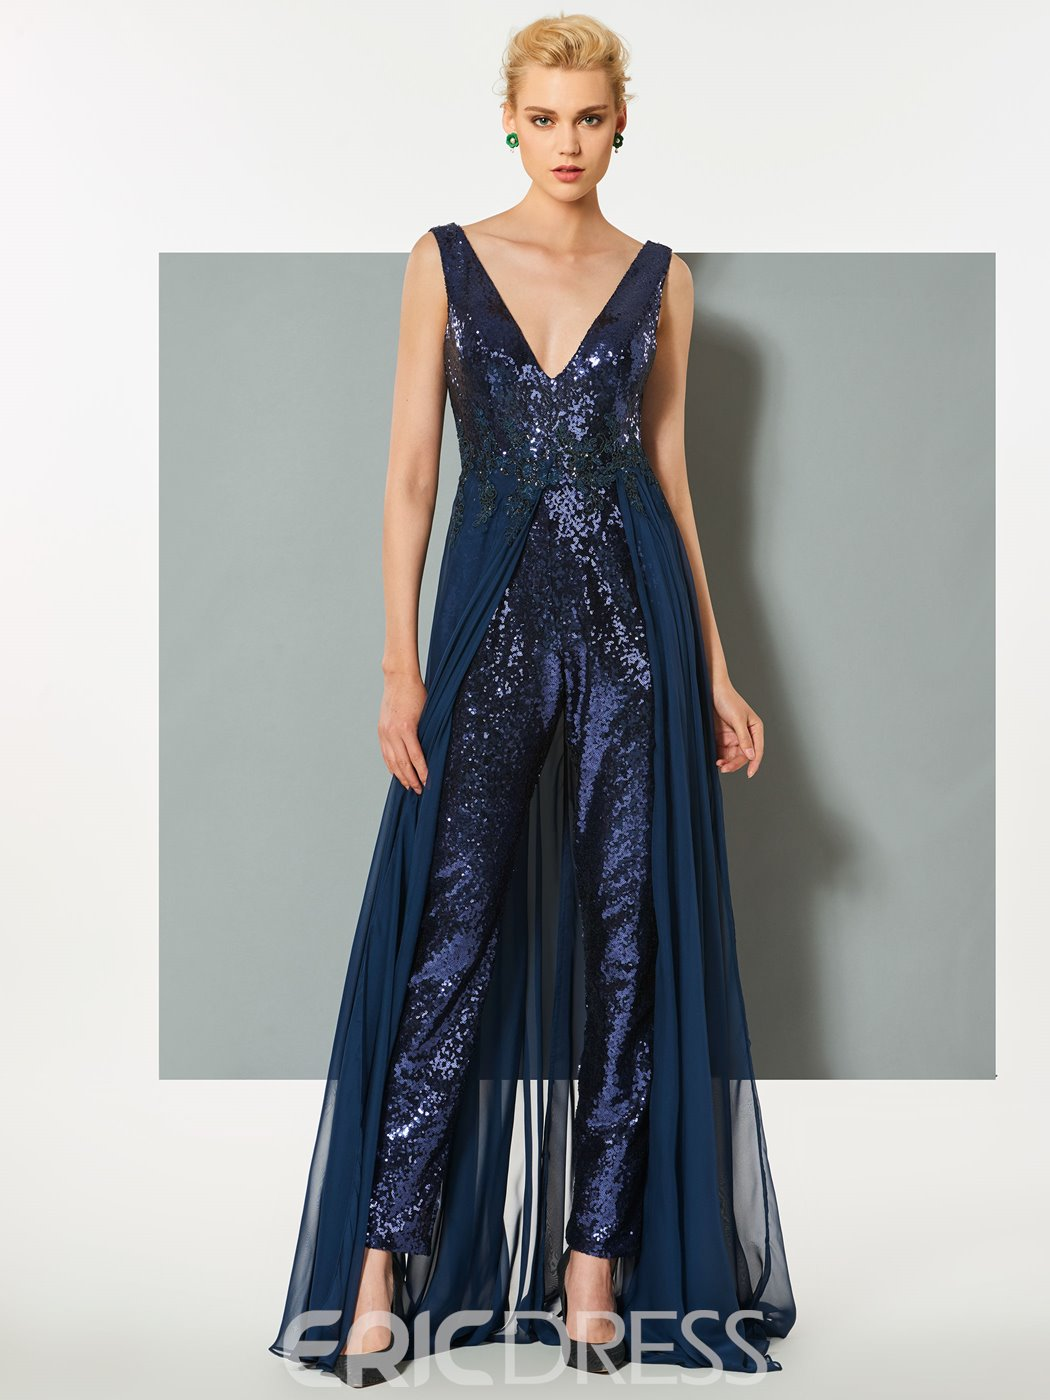 Ericdress Sheath V Neck Sequin Prom Jumpsuit With Train